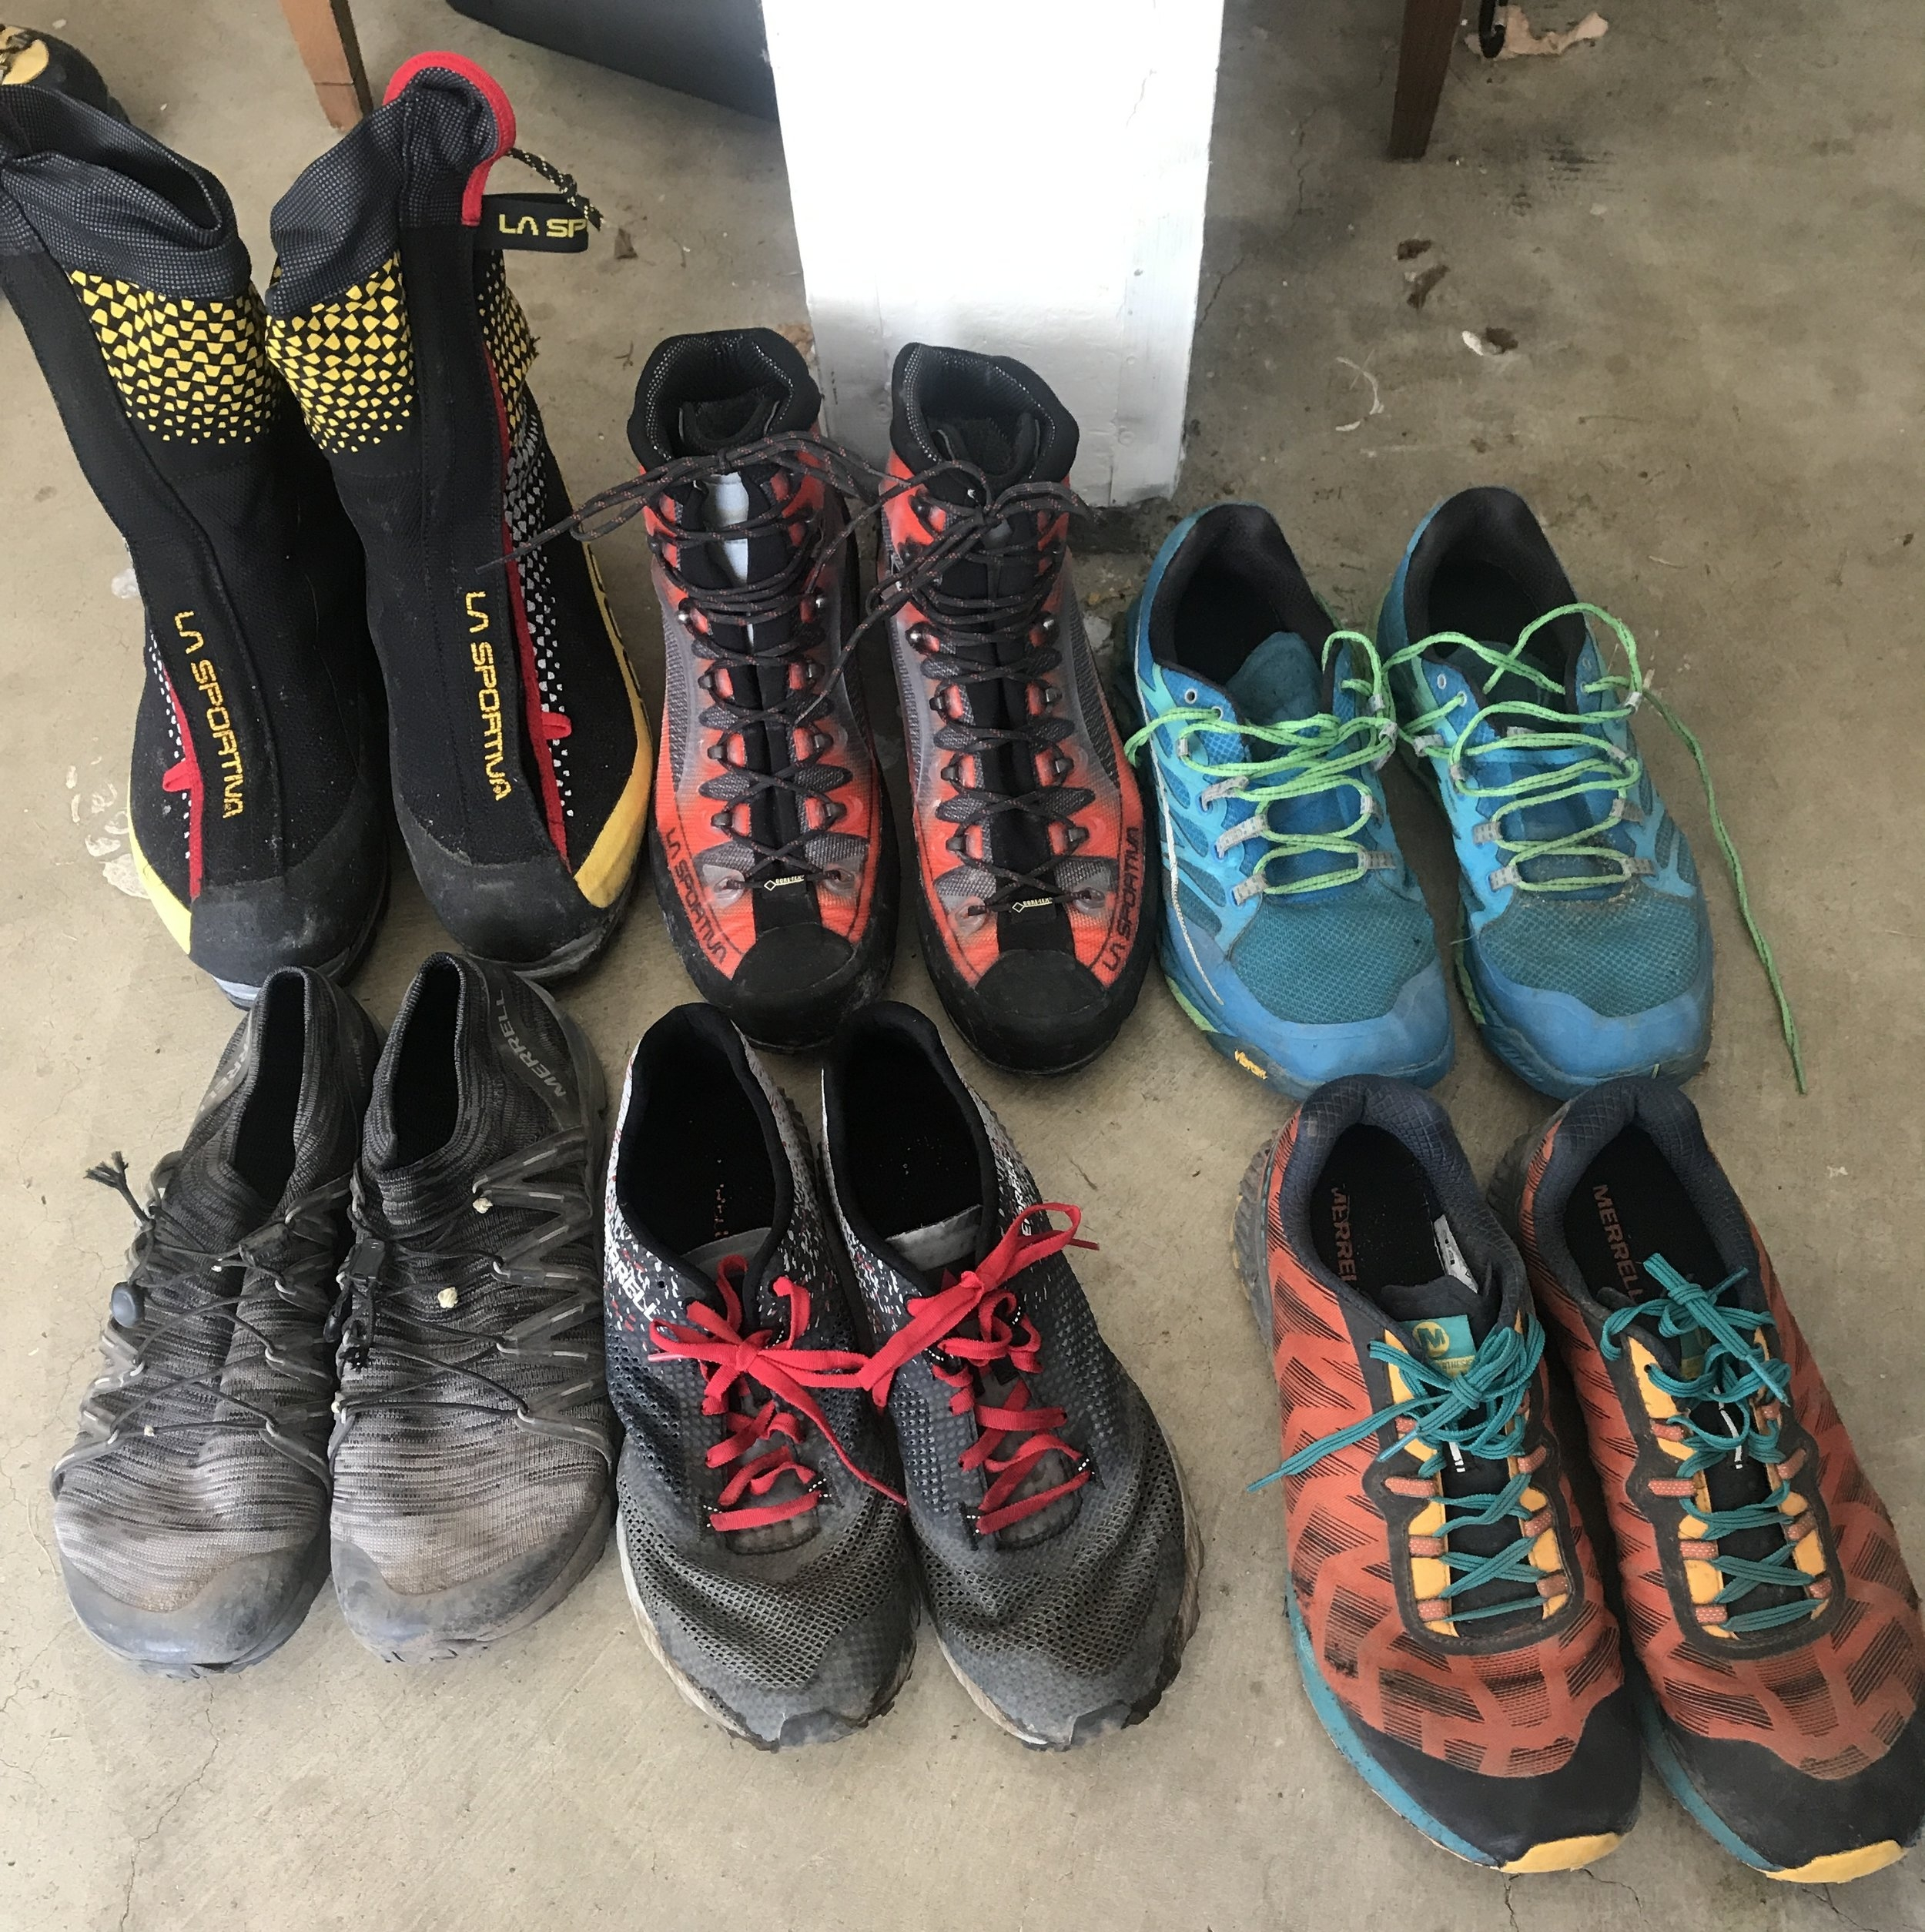 The complete footwear arsenal